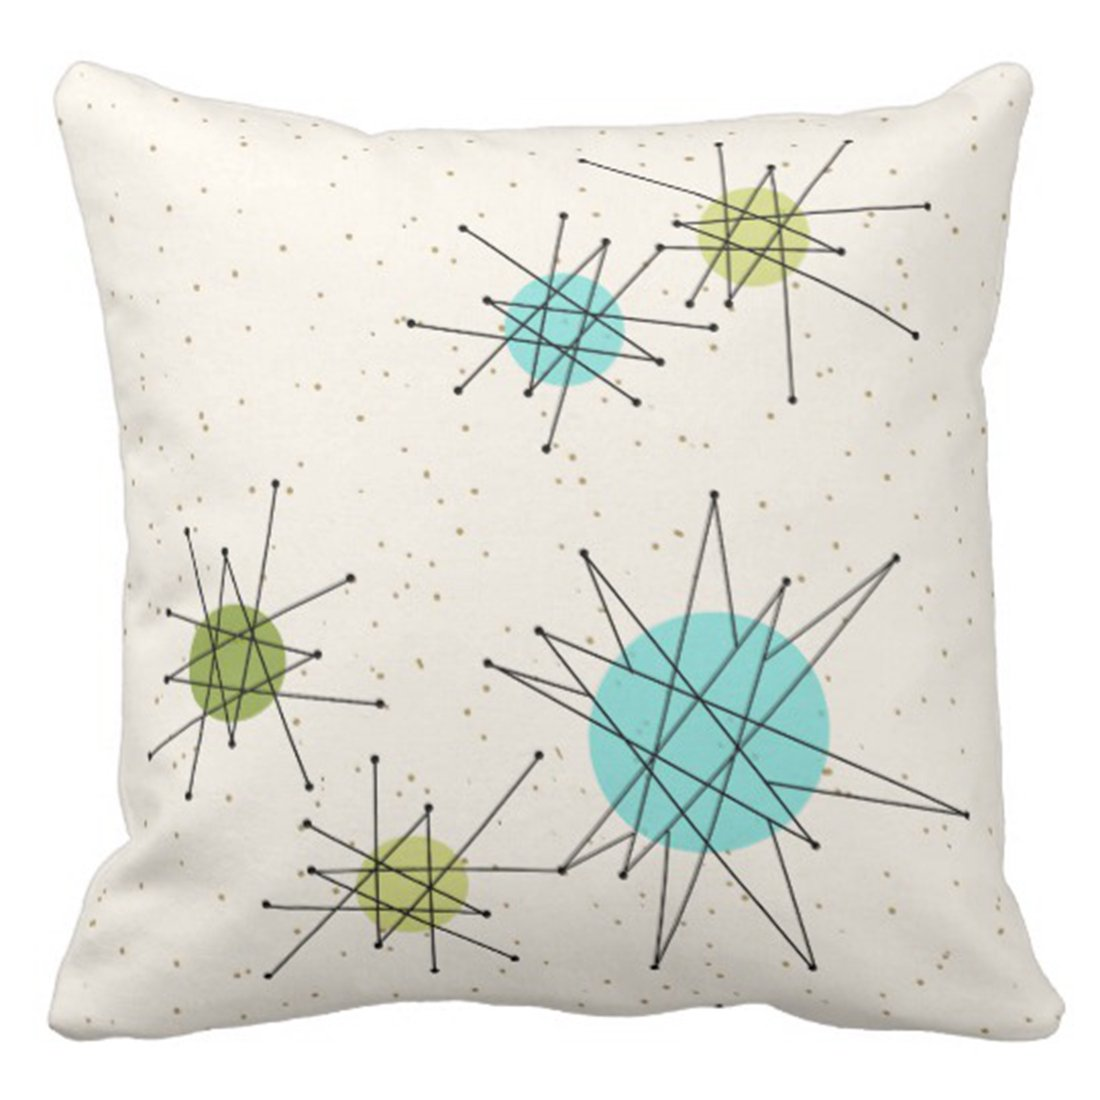 Emvency Throw Pillow Cover Iconic Atomic Starbursts Decorative Pillow Case Retro Home Decor Square 20 x 20 Inch Cushion Pillowcase